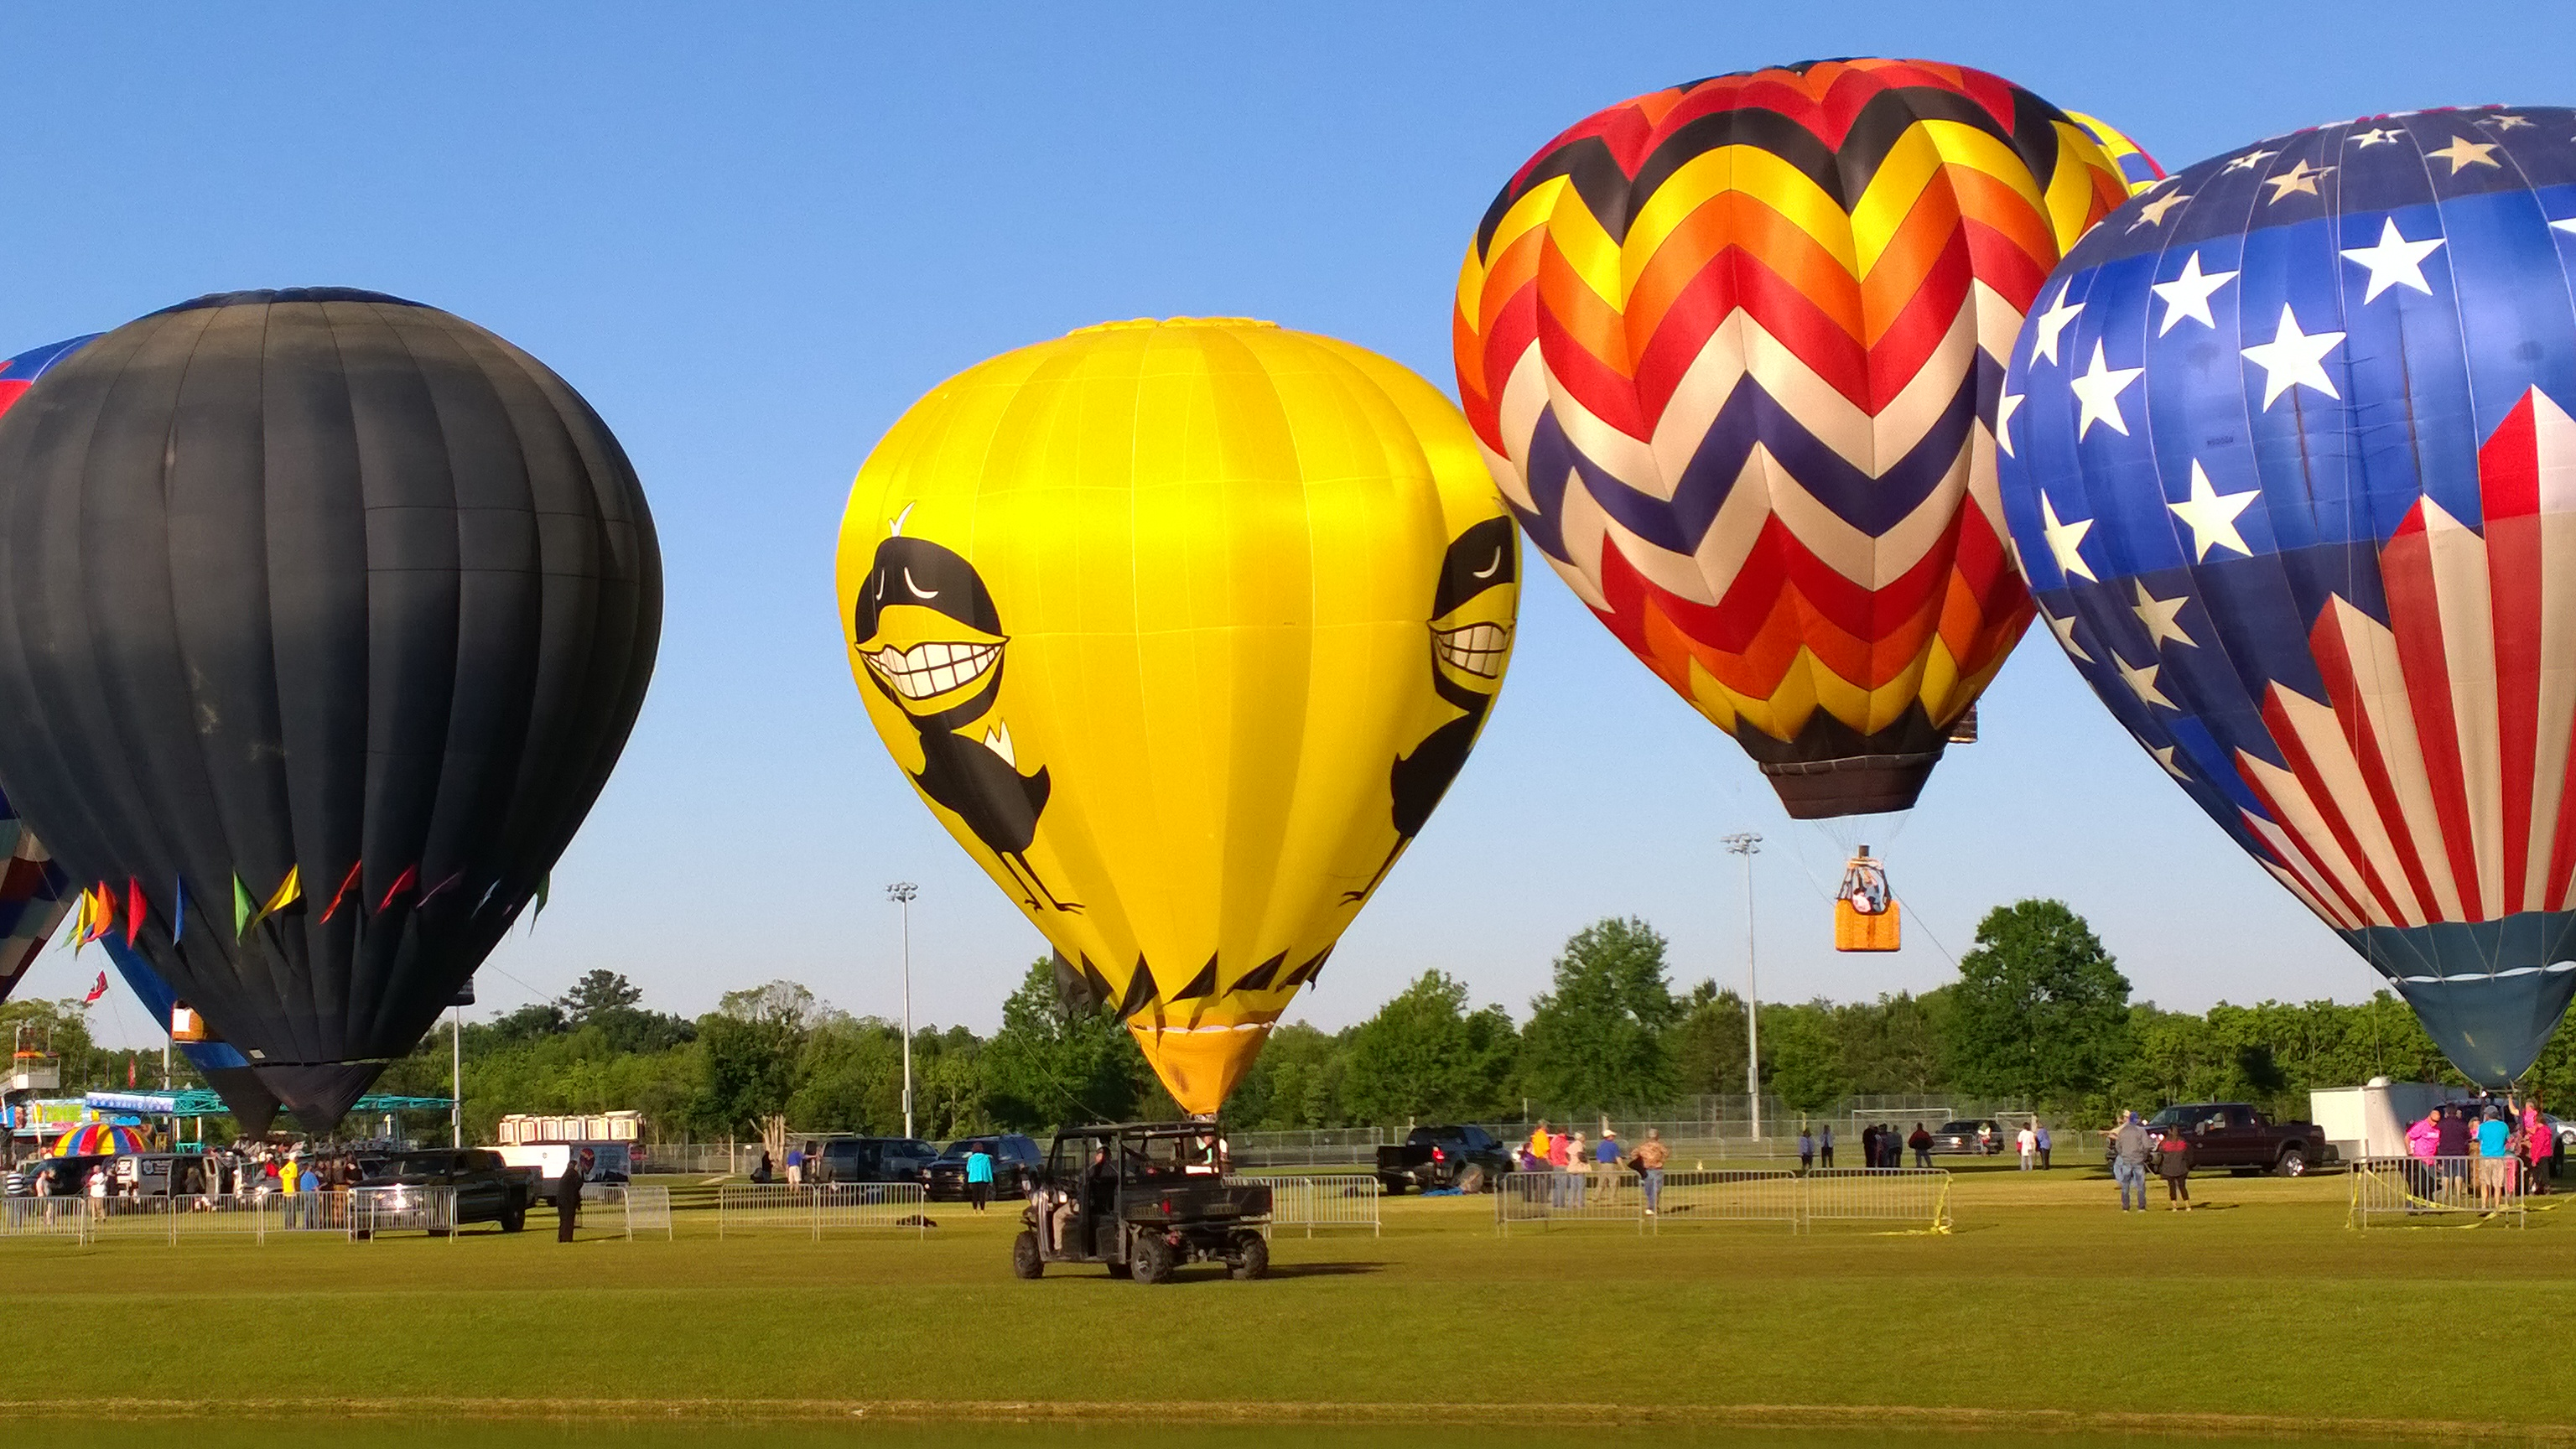 Gulf Coast Balloon Festival 2017